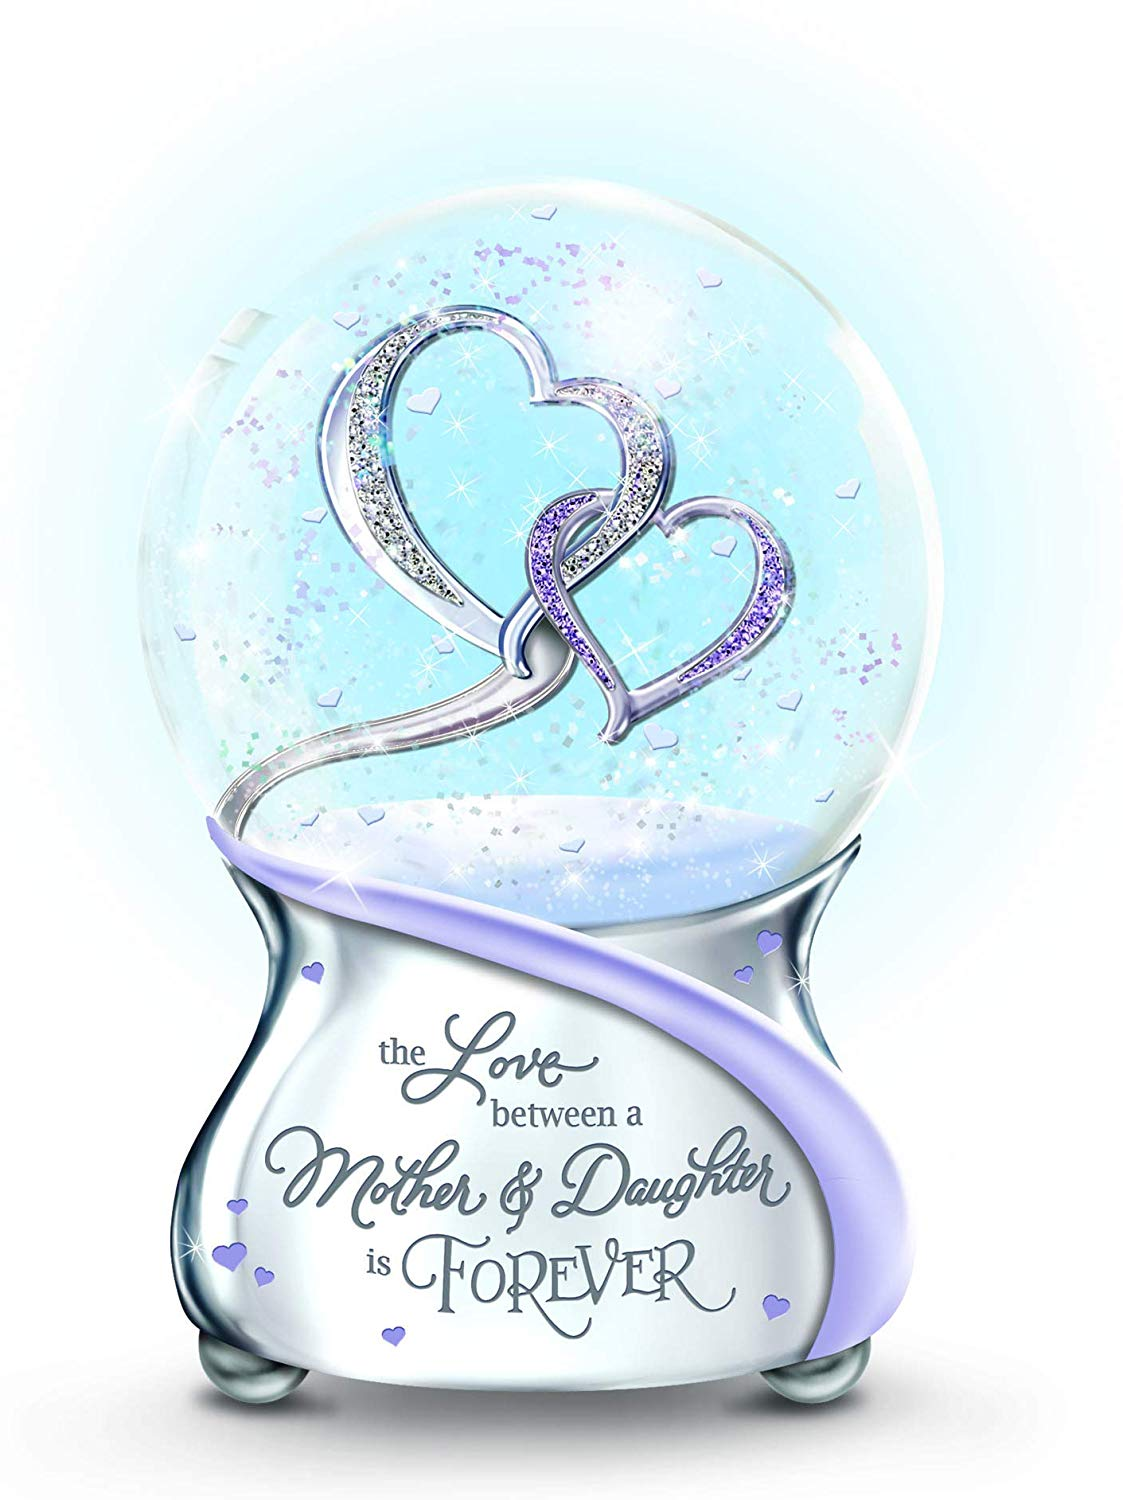 The Bradford Exchange 'Love Between Mother And Daughter Is Forever' Glitter Globe